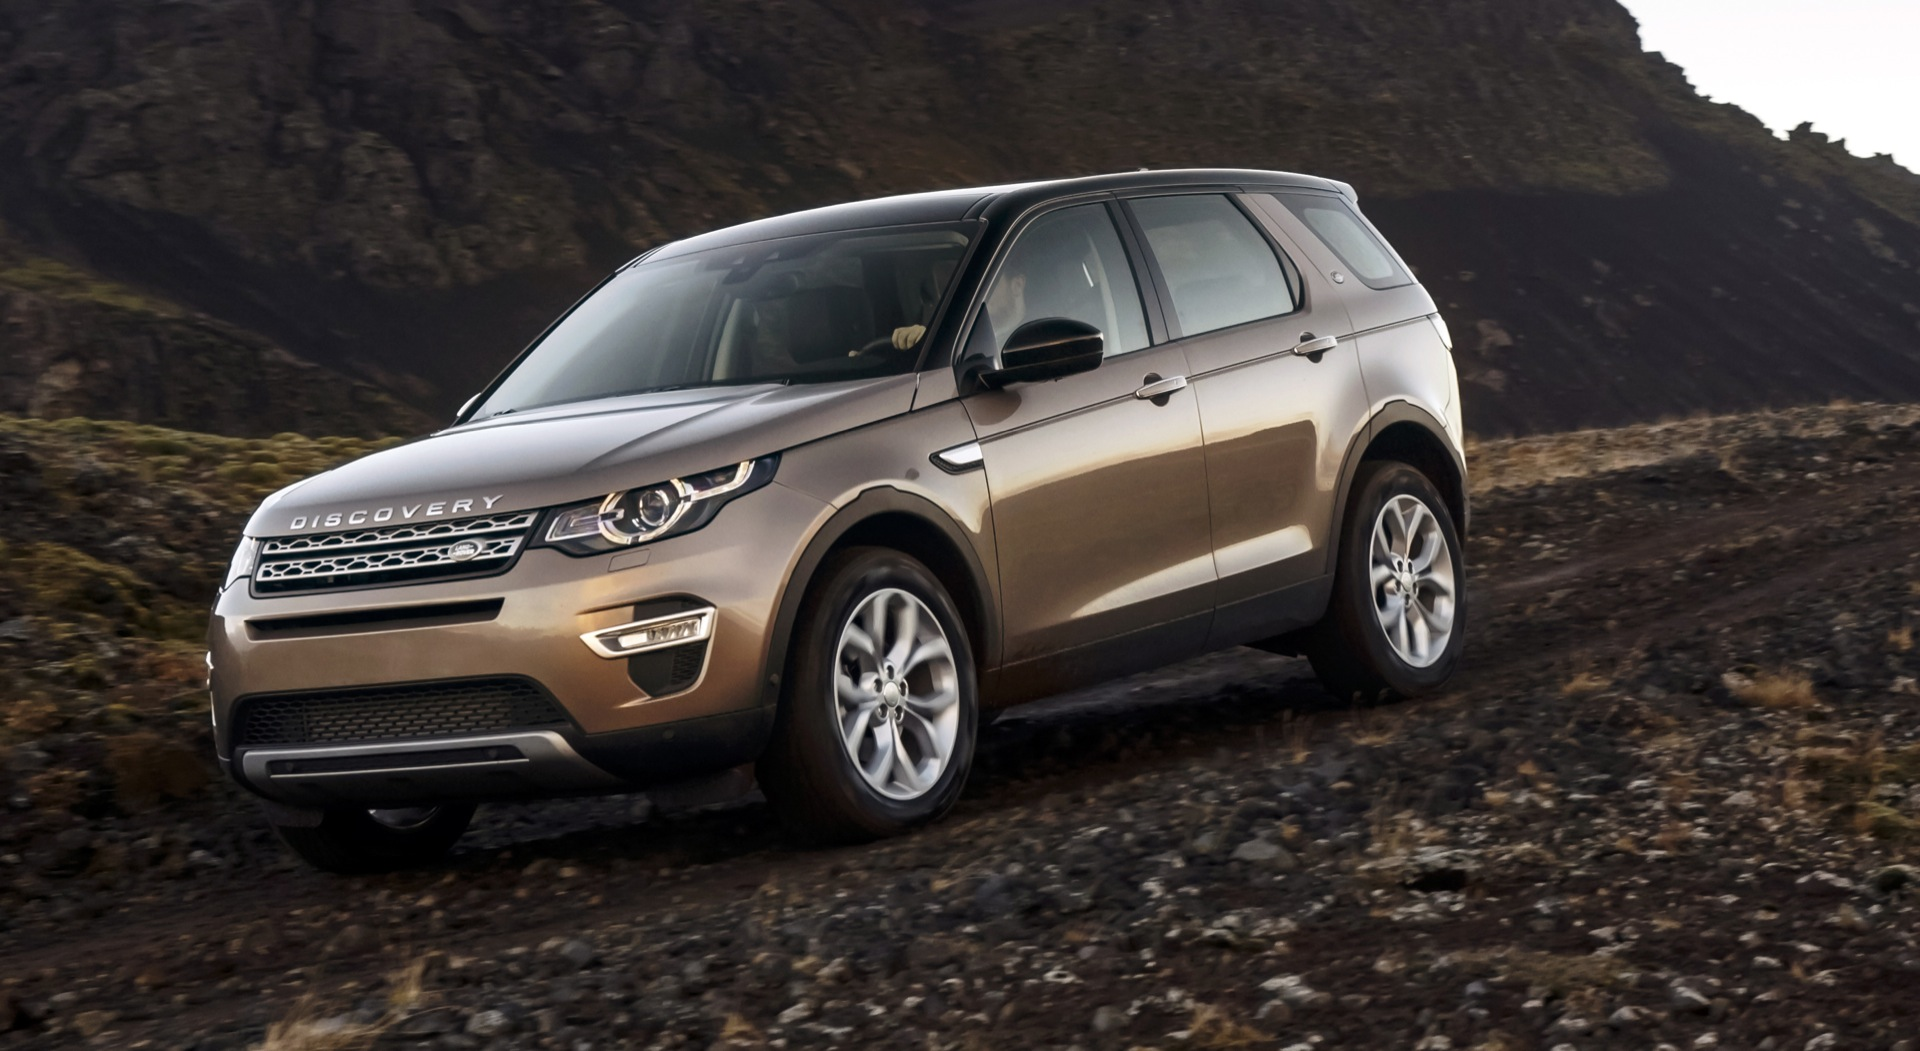 contender sport year motor news land trend hse motion suv side of rover price landrover en in discovery the